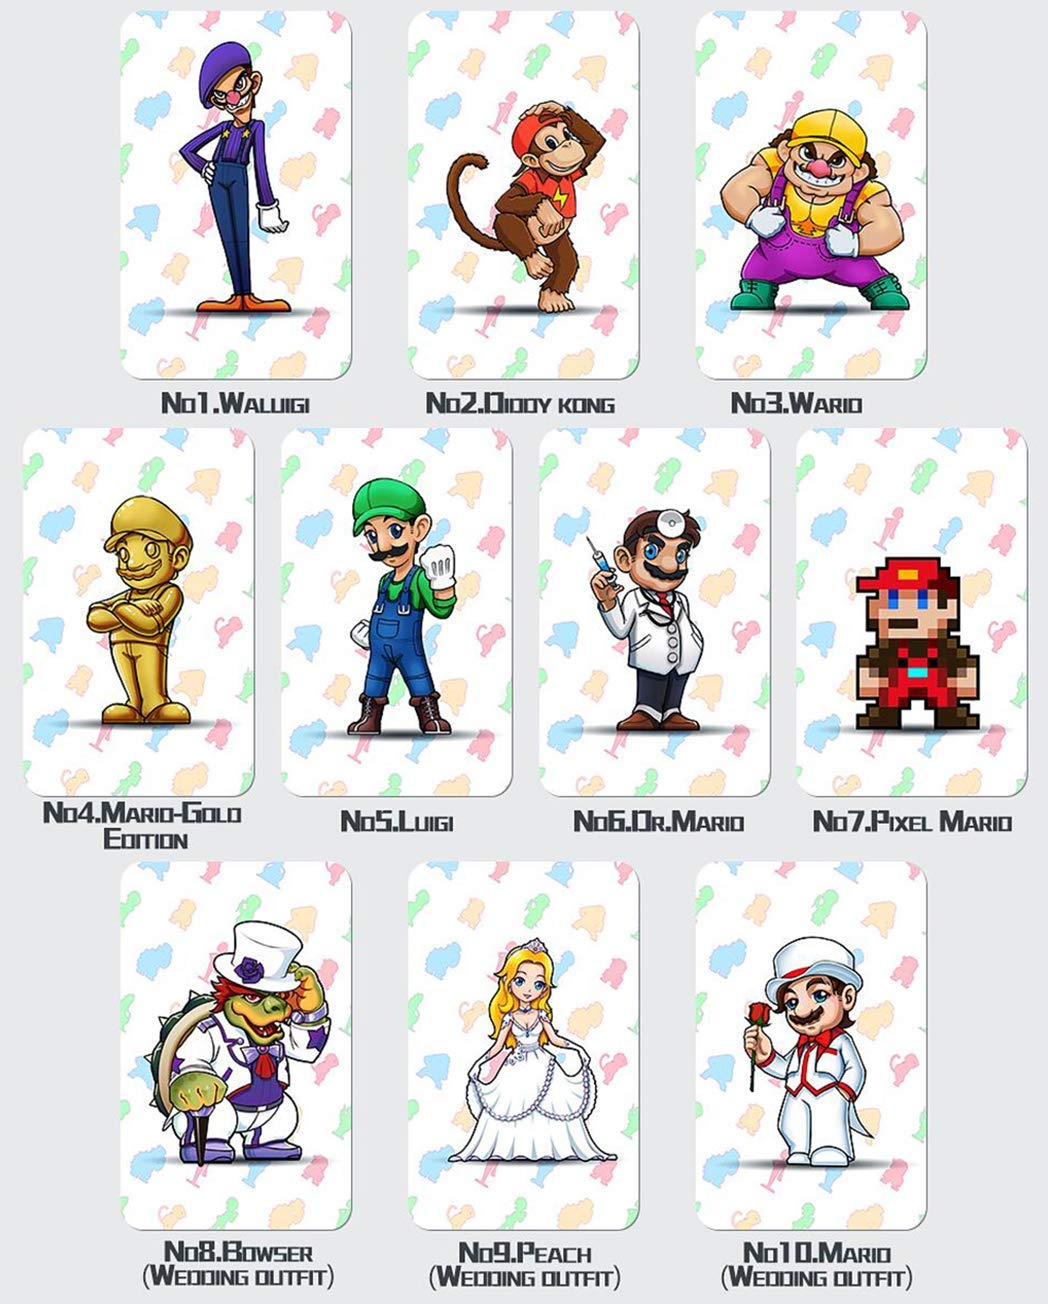 10pcs Nfc Tag Game Cards For Super Mario Odyssey Switch